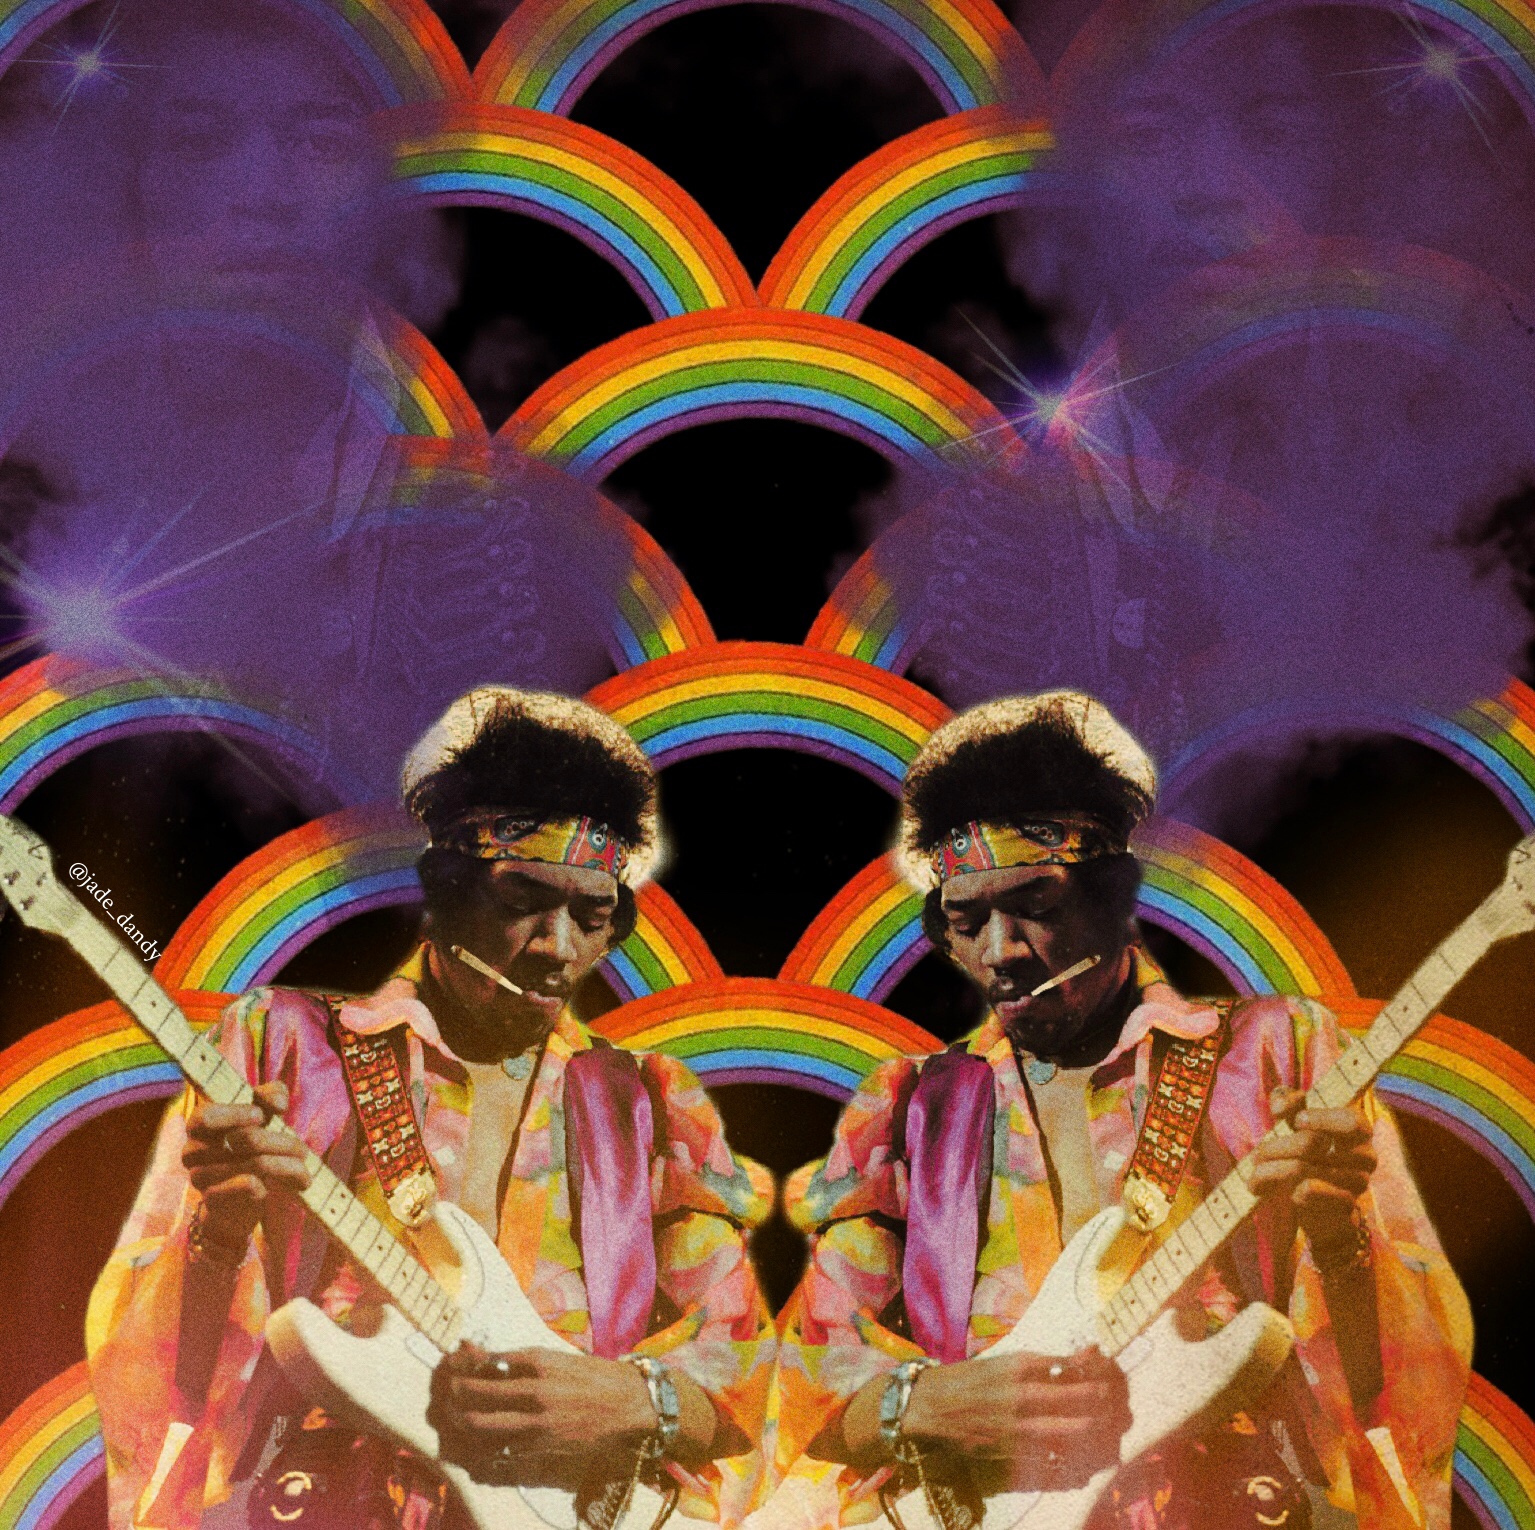 Jimi In The Purple Haze Created Using Mixed Digital Media